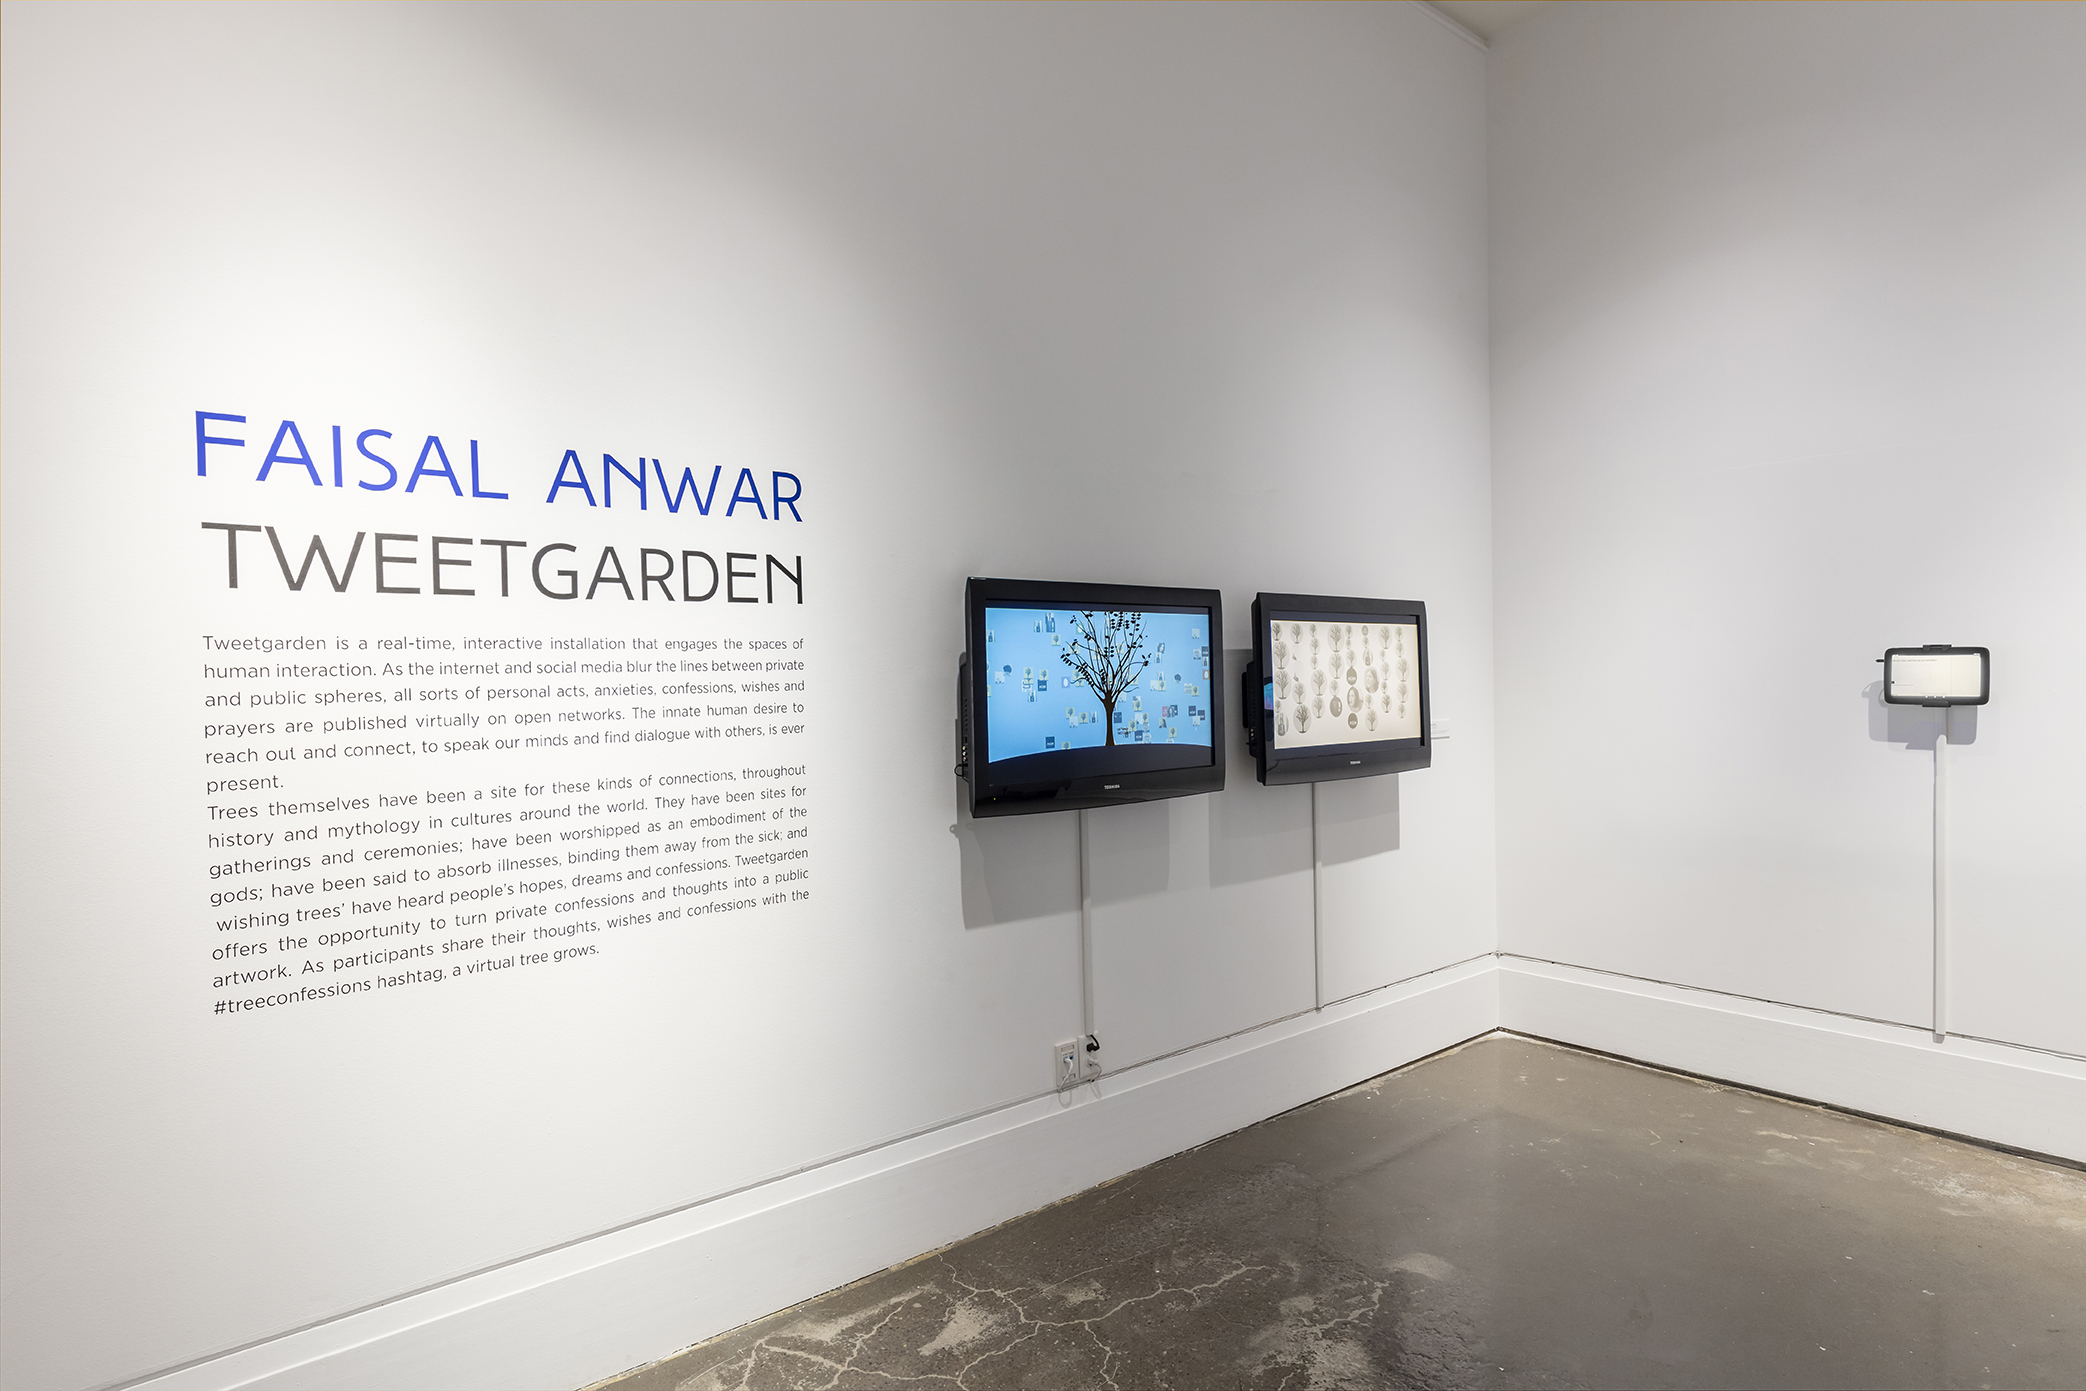 Faisal Anwar,  Tweetgarden , Resource Room, Art Gallery of Mississauga. Photo by Toni Hafkenscheid.